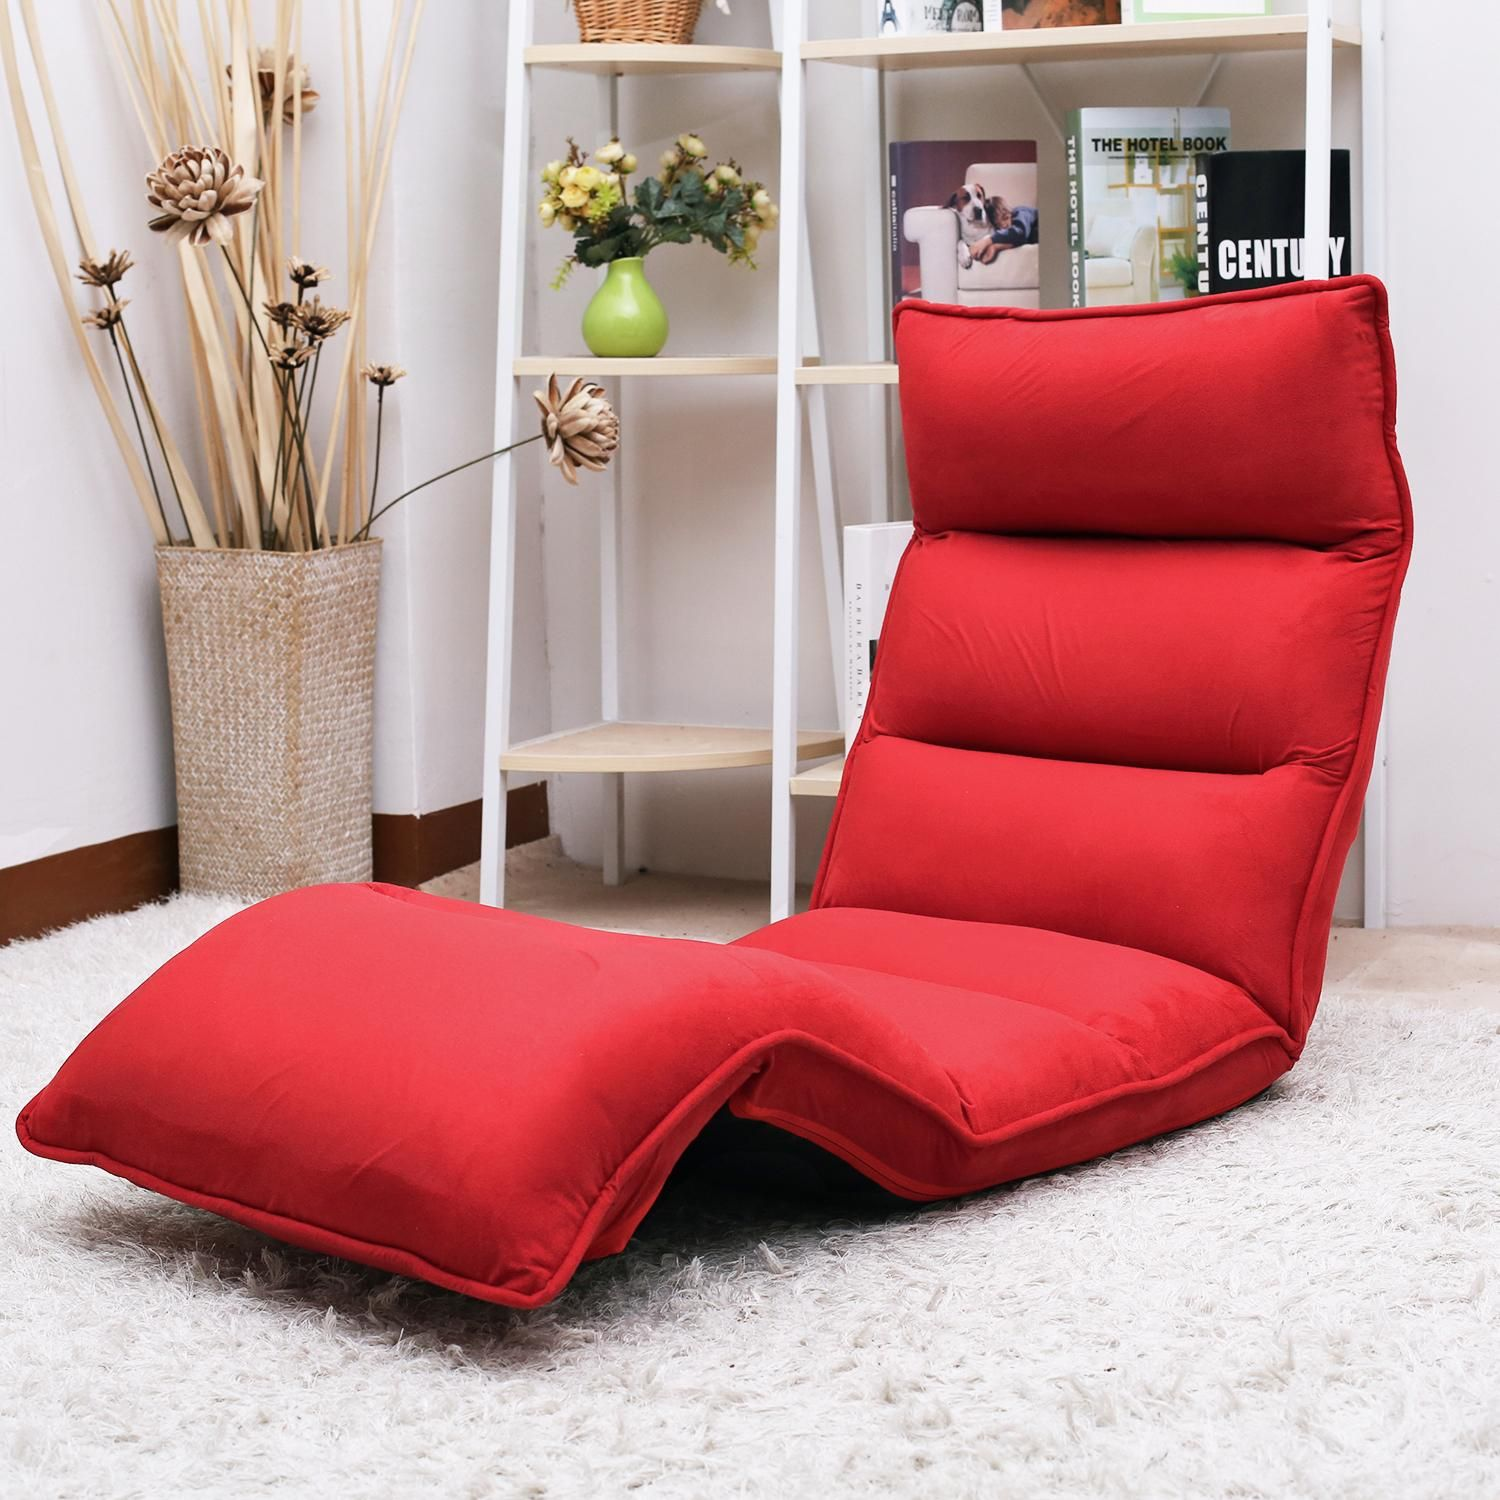 Pin On Sofa Bed Fabric Hs Code